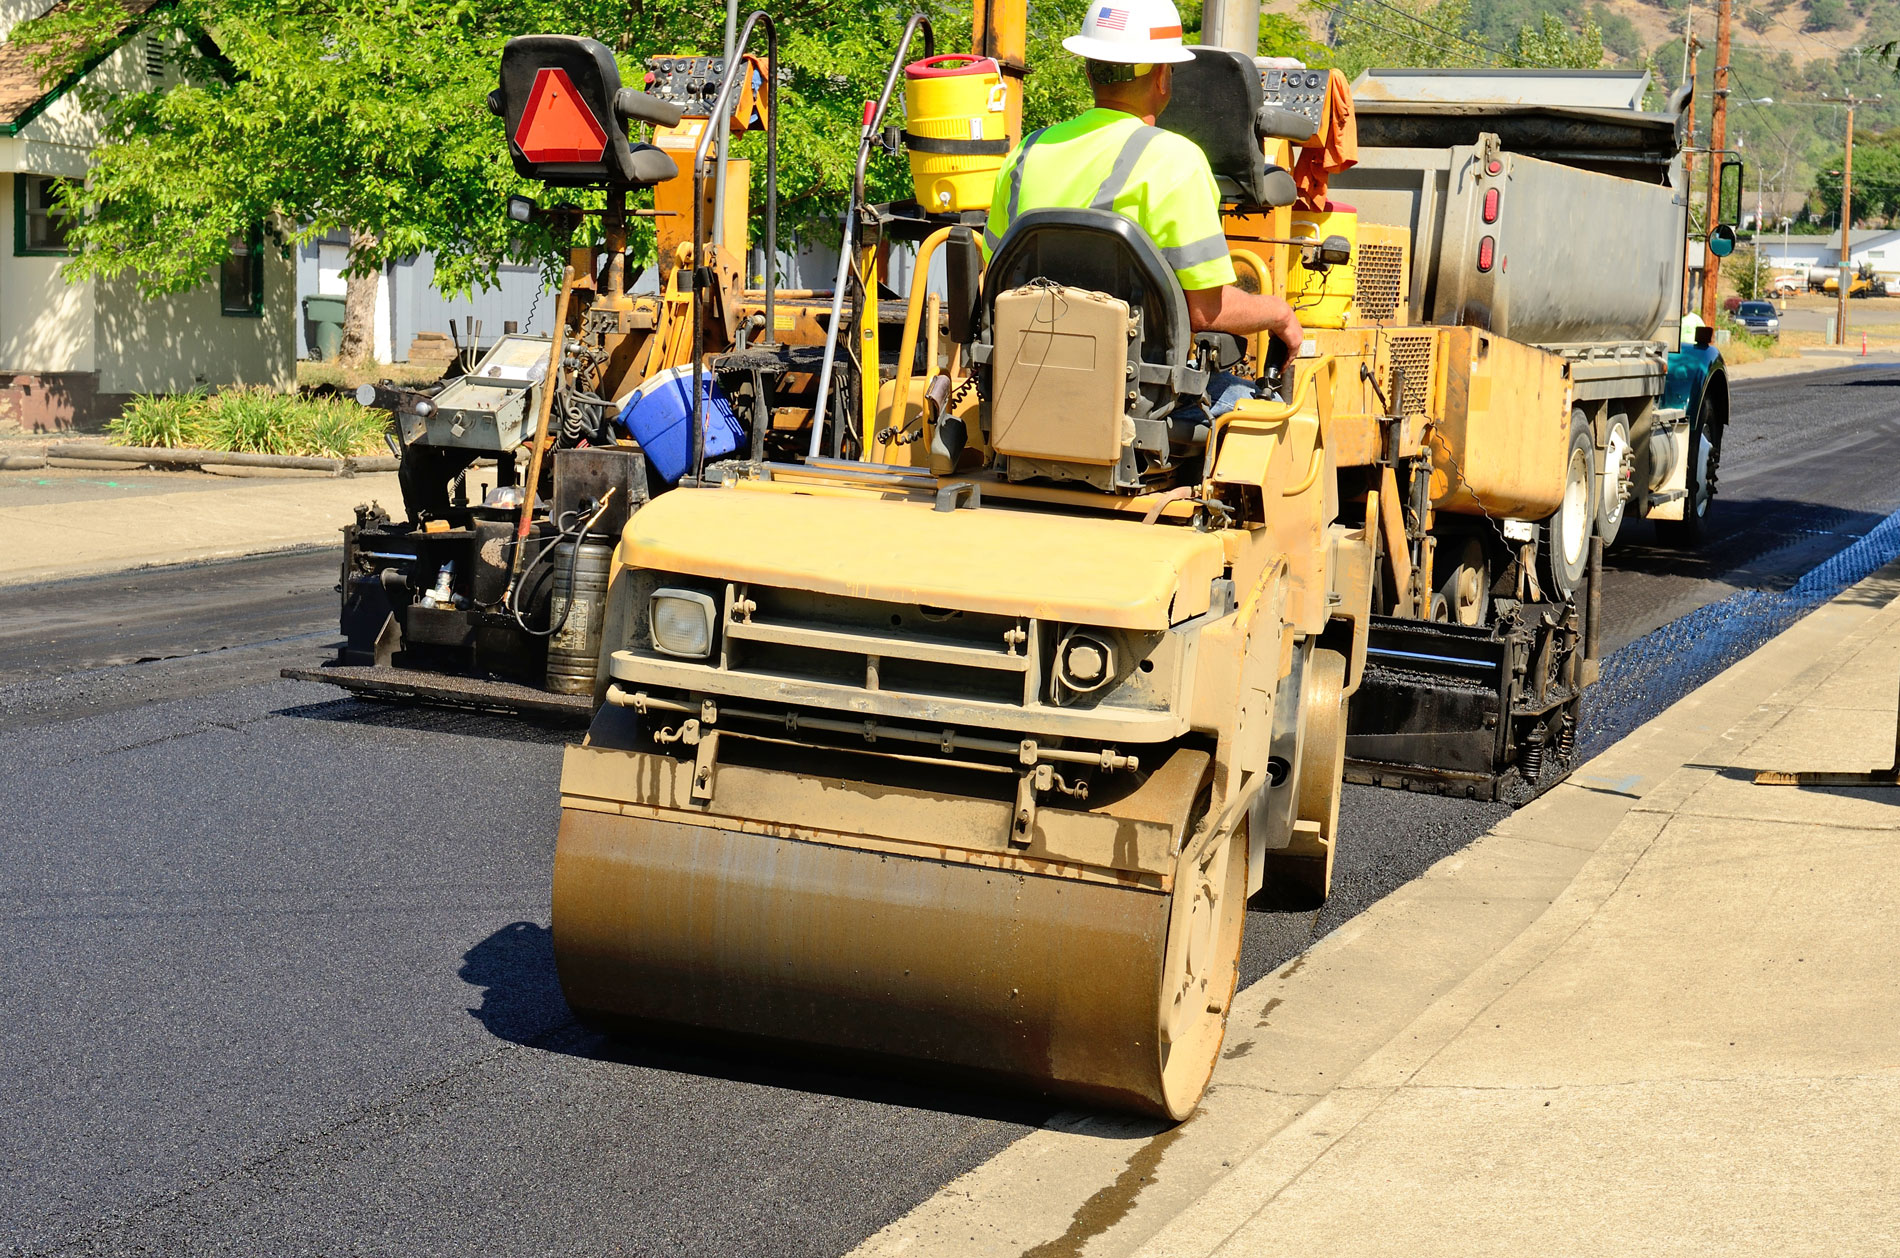 APS Chipsealing and Paving asphalting a road with a roller